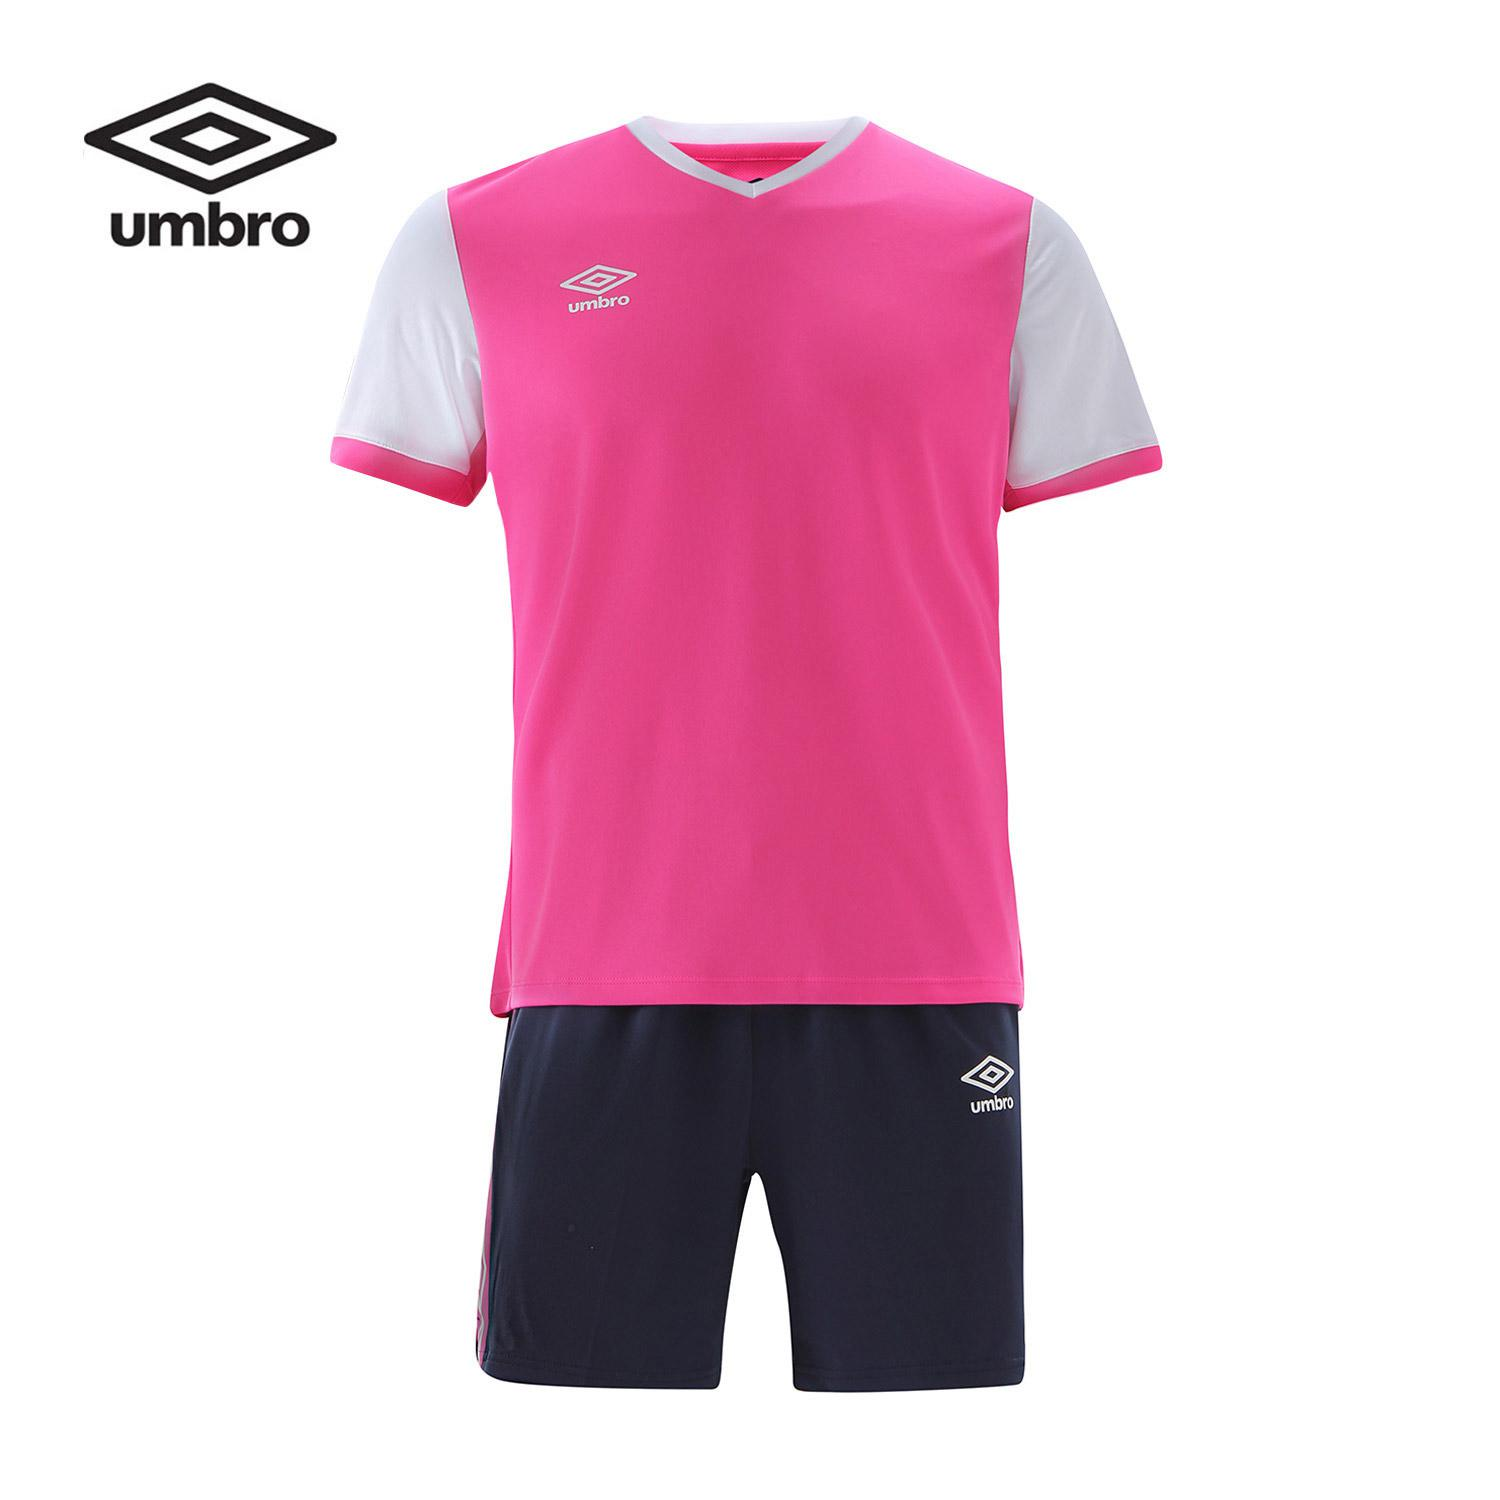 US $31 59 |Umbro Men's Football Suit Kit Soccer Jersey Sets Suit Team  Custom Tram Training Football Shirts Jersey Uzc63601 on Aliexpress com |  Alibaba